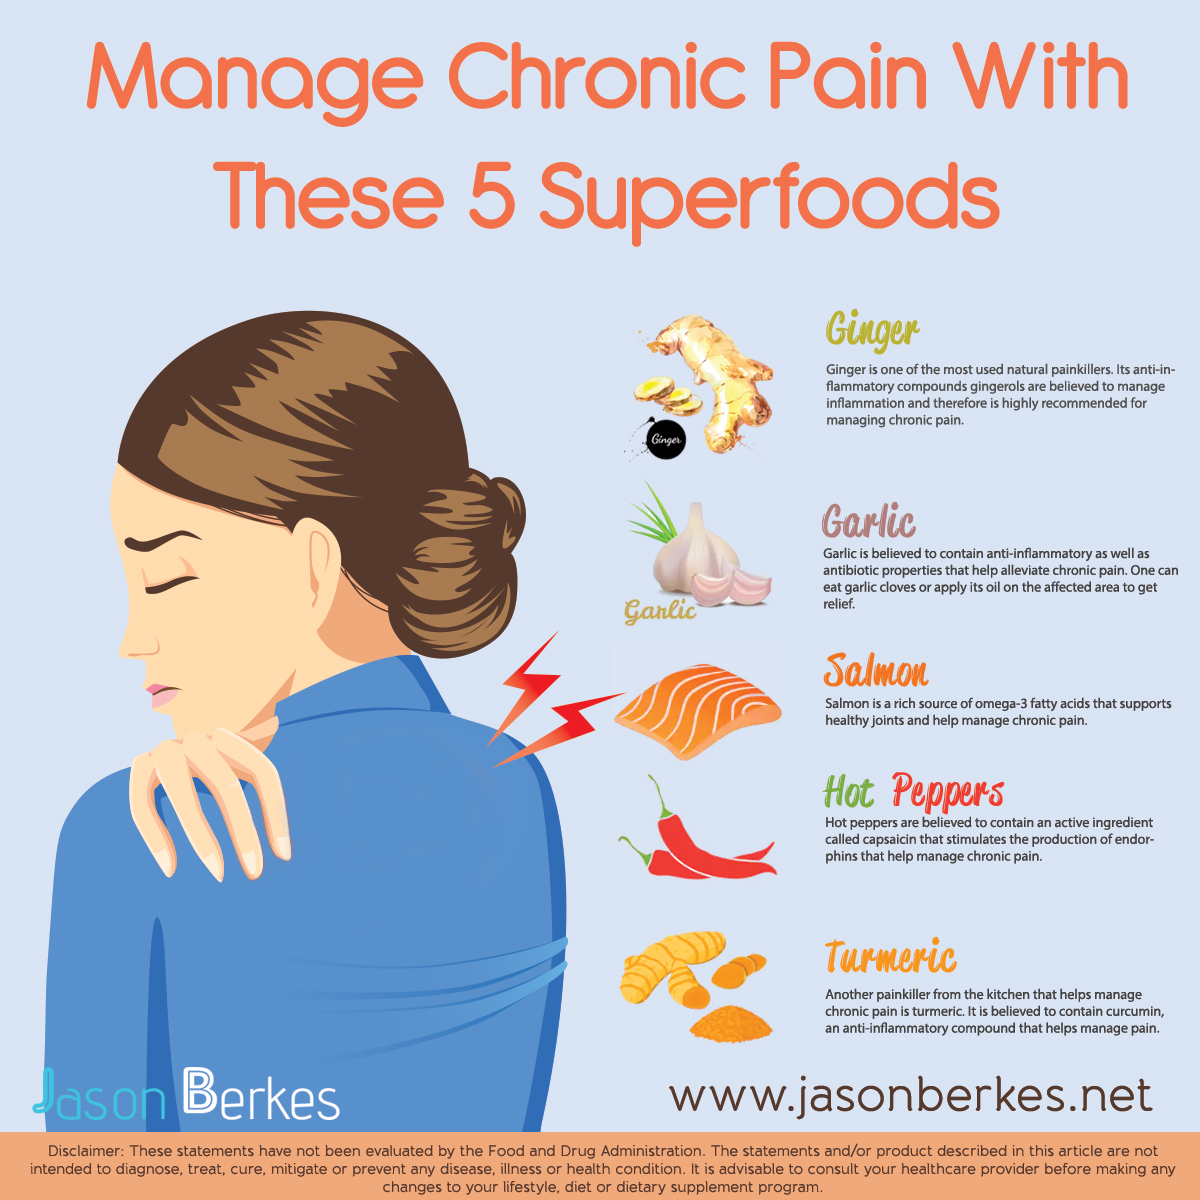 Manage Chronic Pain With these Super Foods